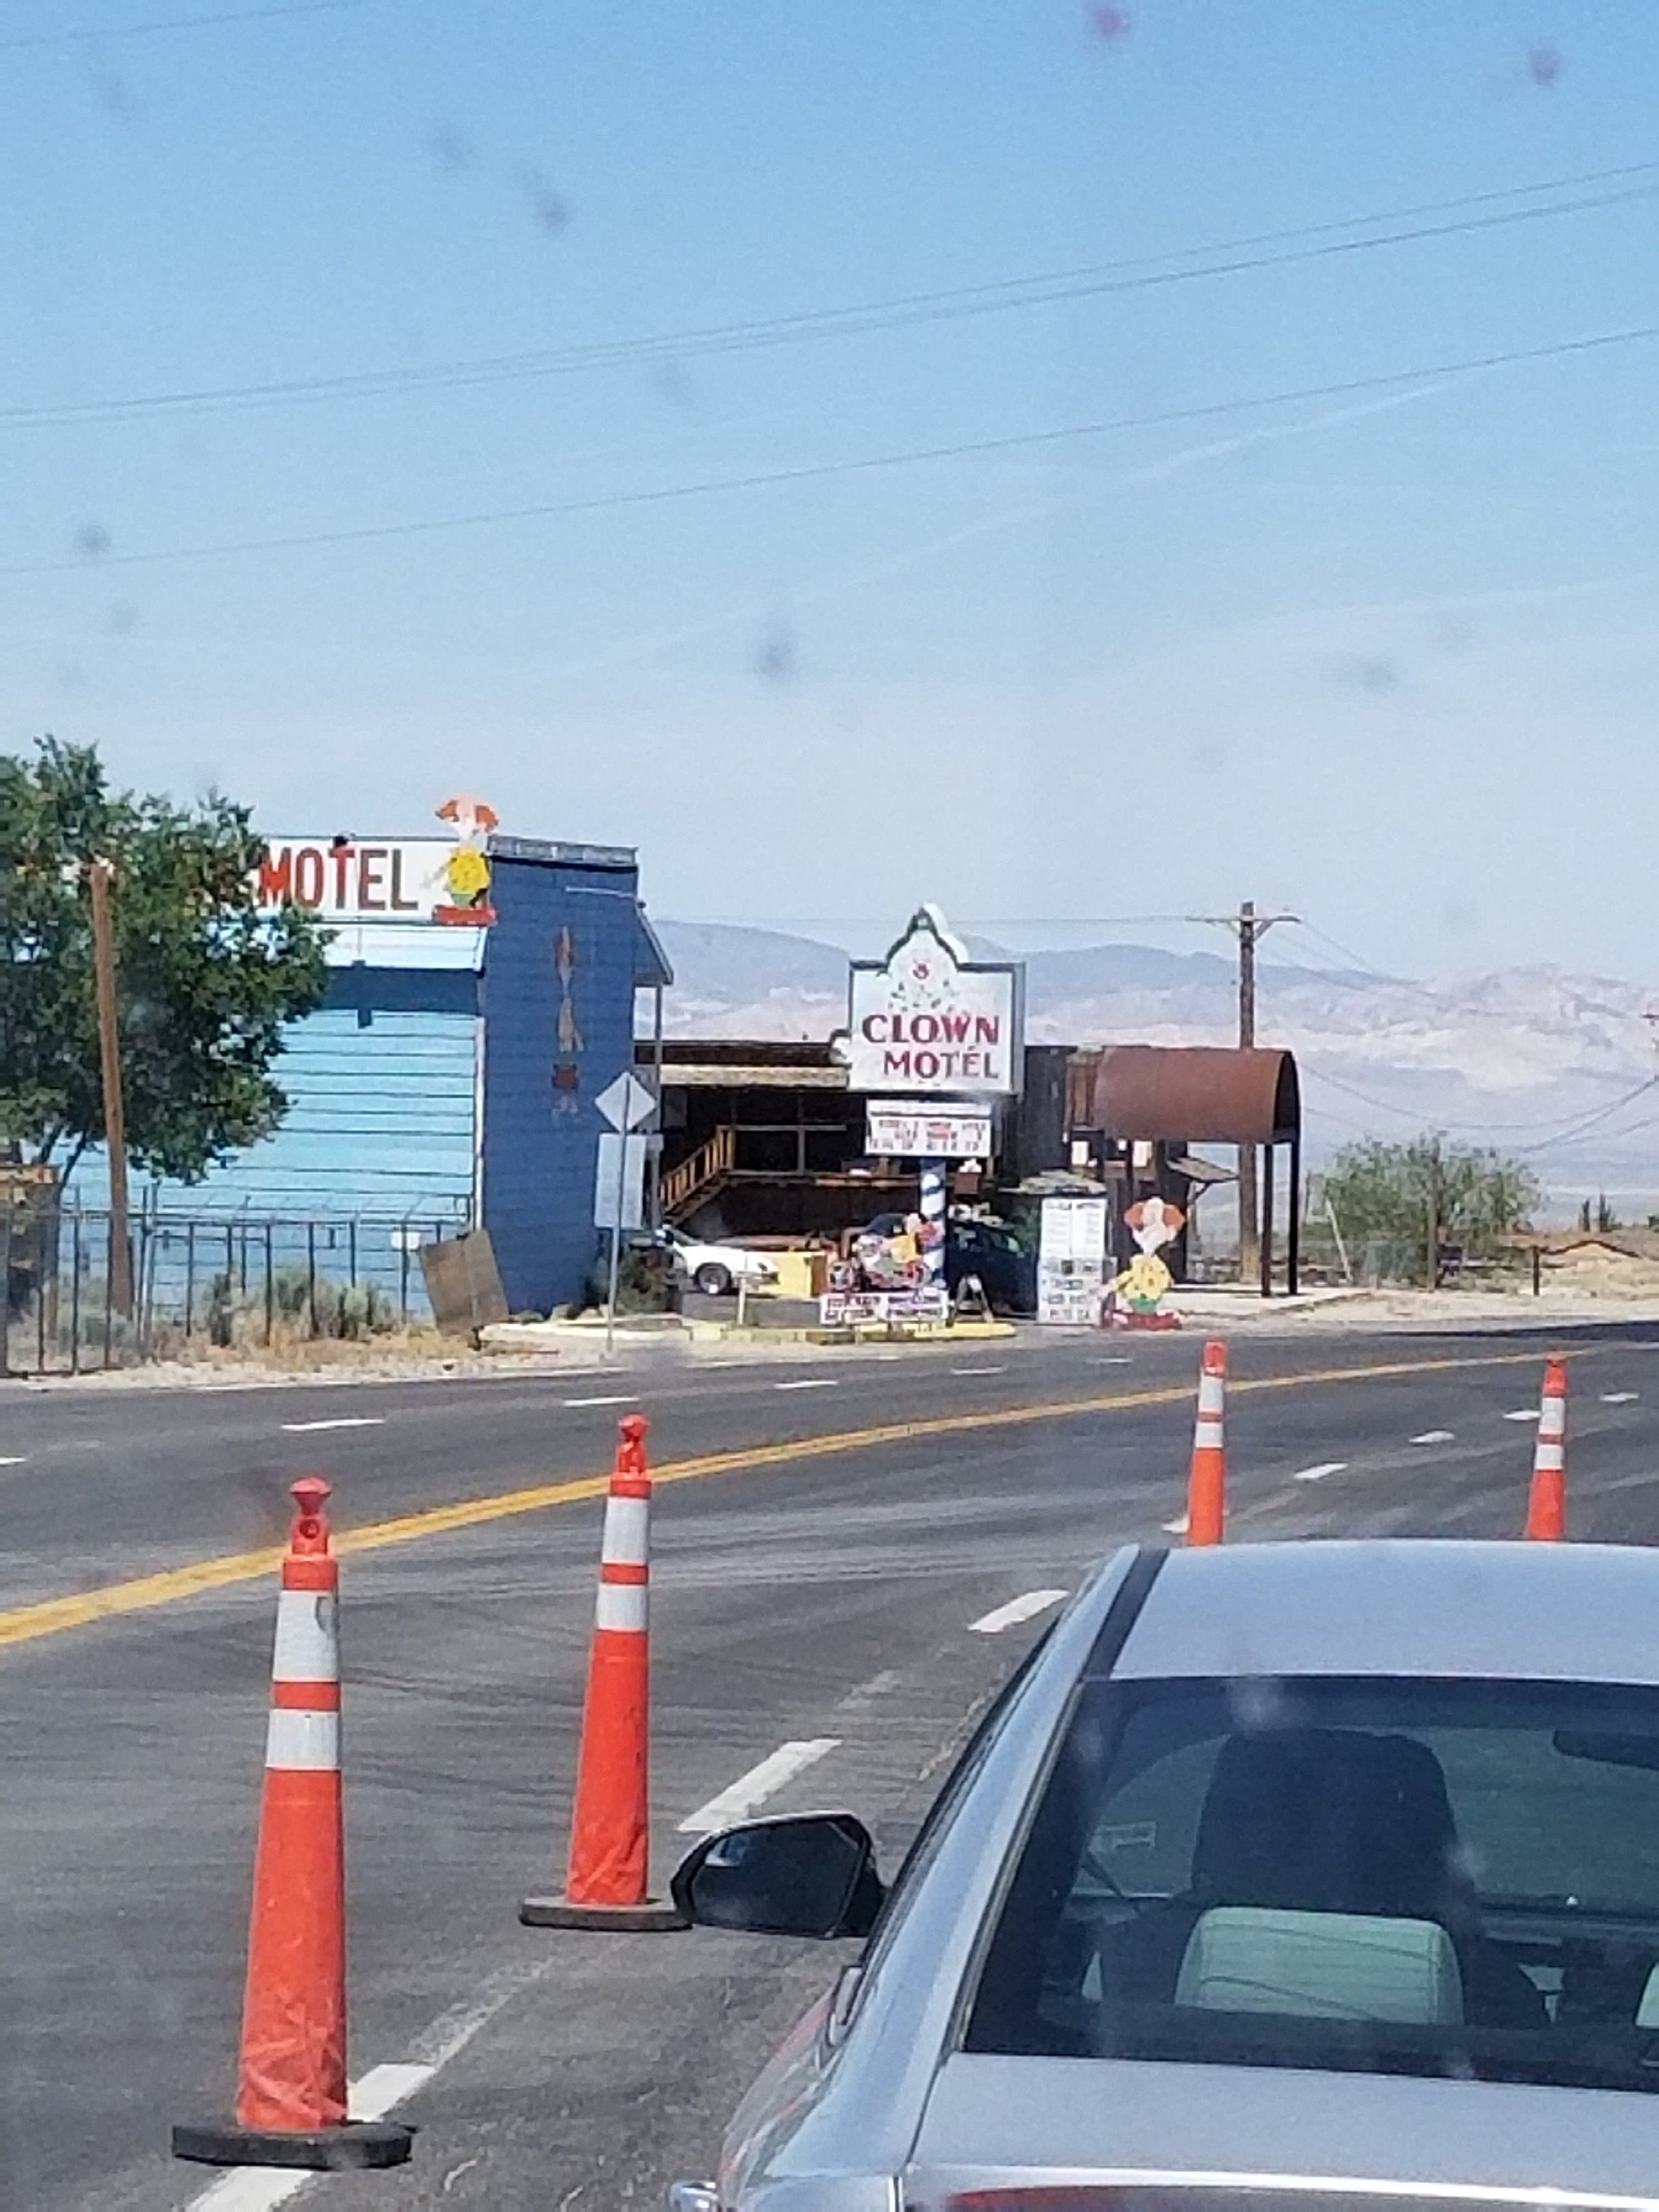 Think I will pass on the Clown Motel. Solo desert driving +traffic=bored.